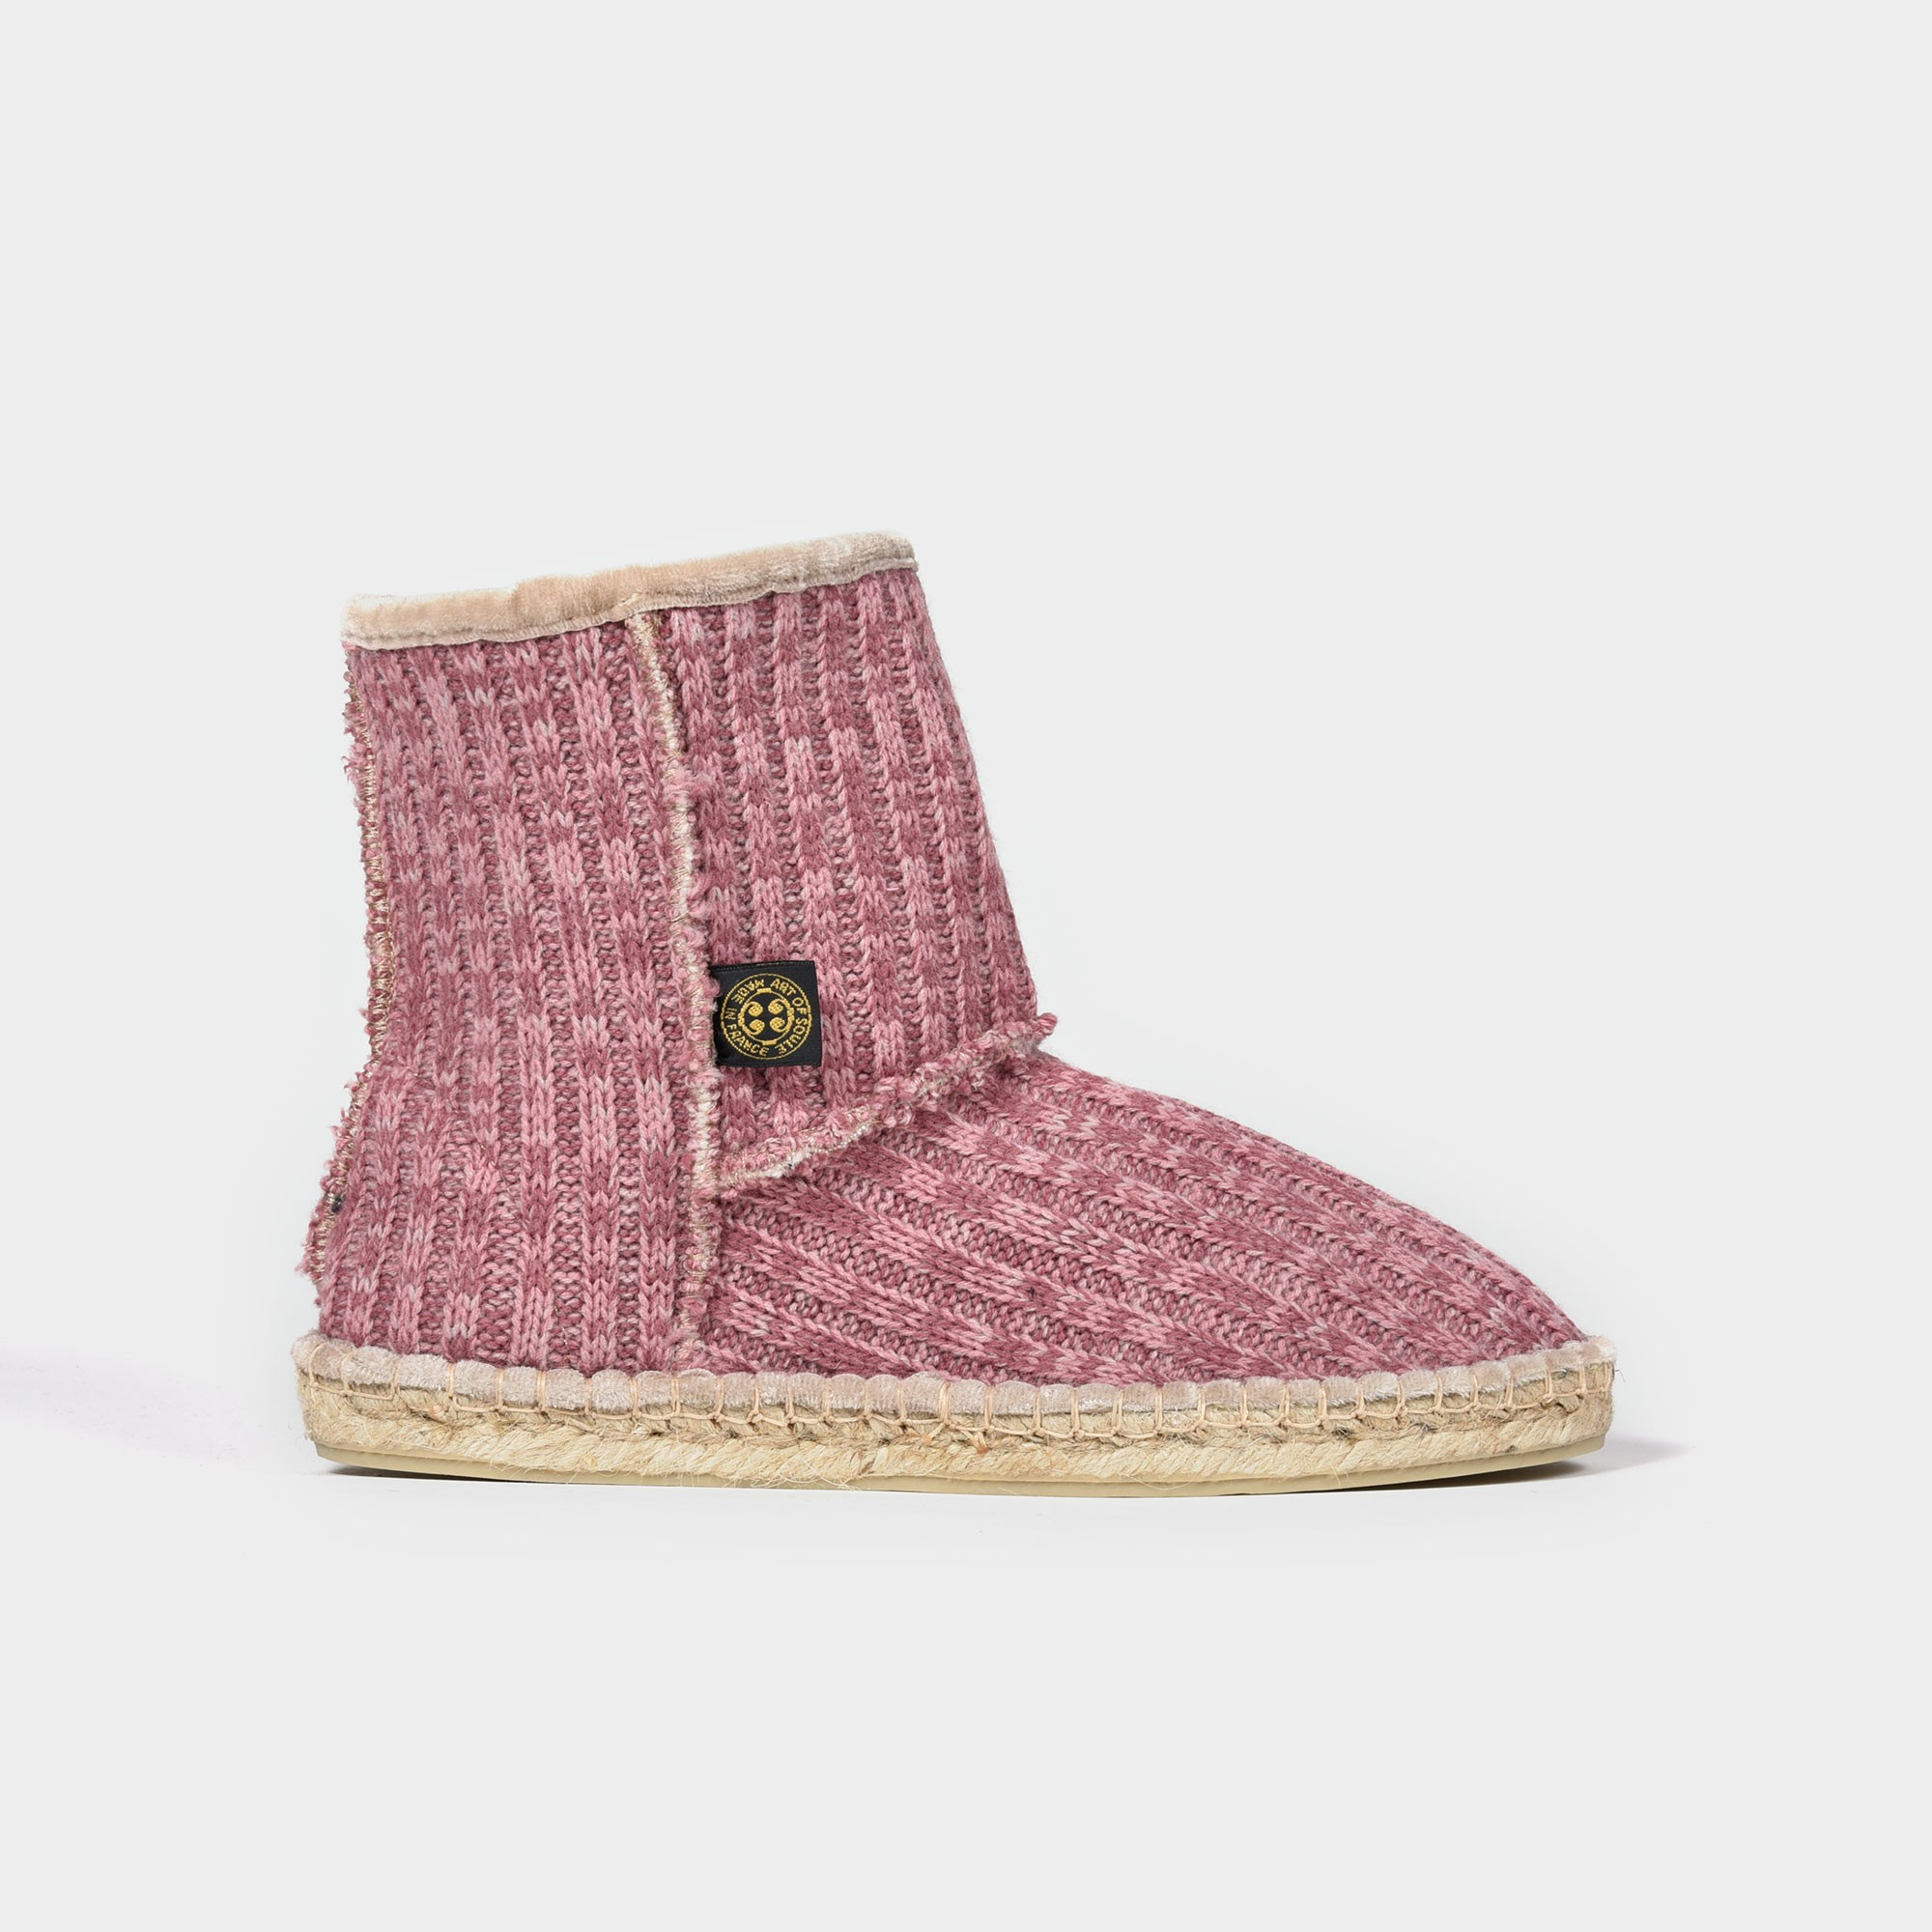 Espadrille Wool pink boots